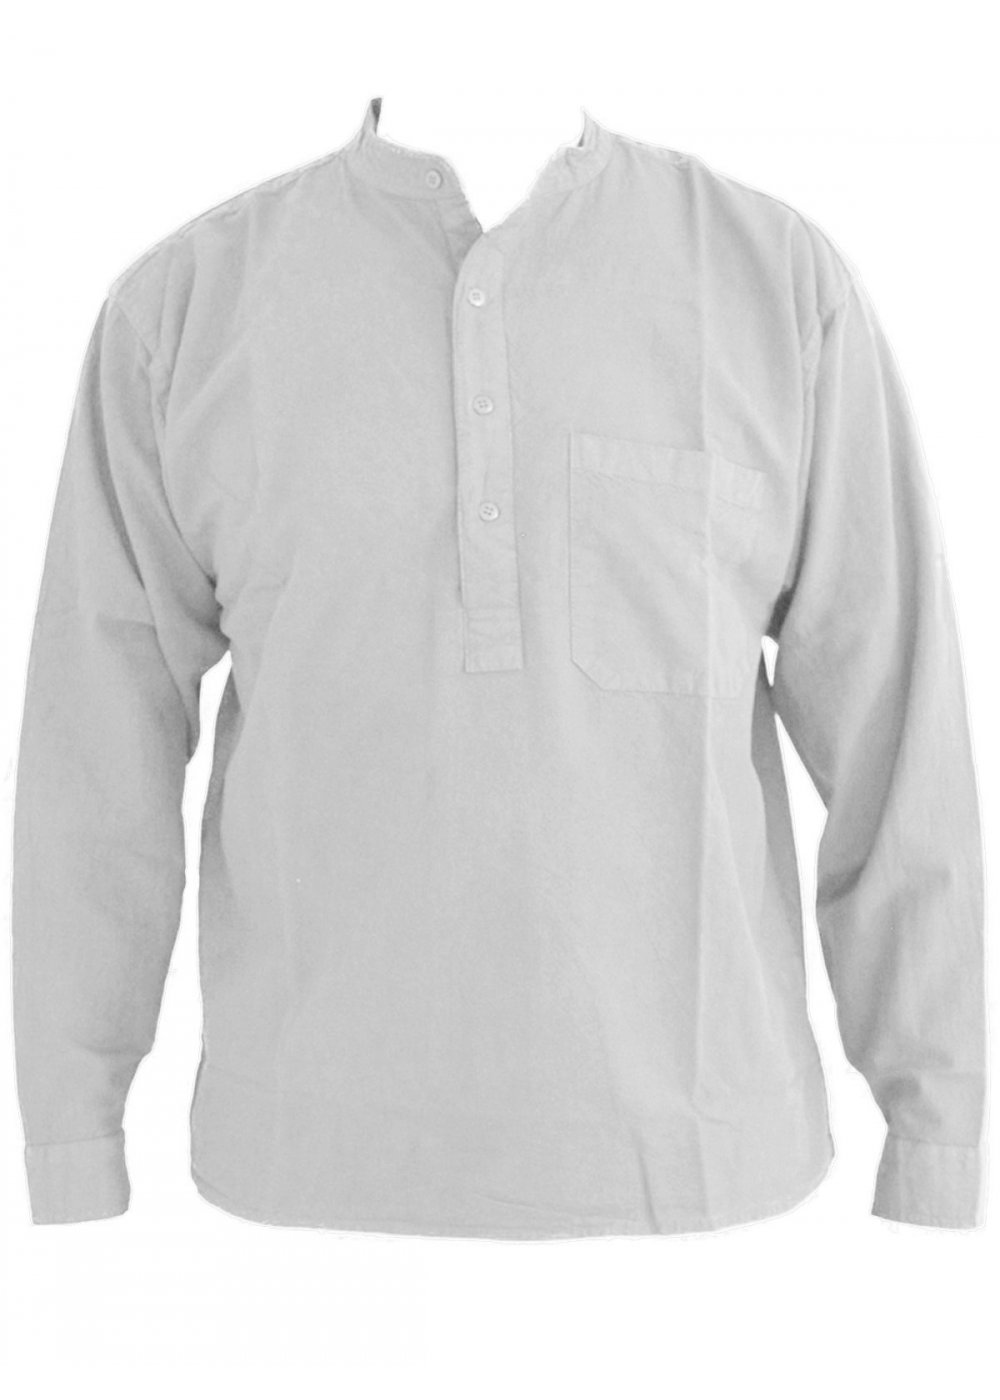 grandad shirt plain-heavy-collarless-grandad-shirt-sizes-small-to- emsfqtl